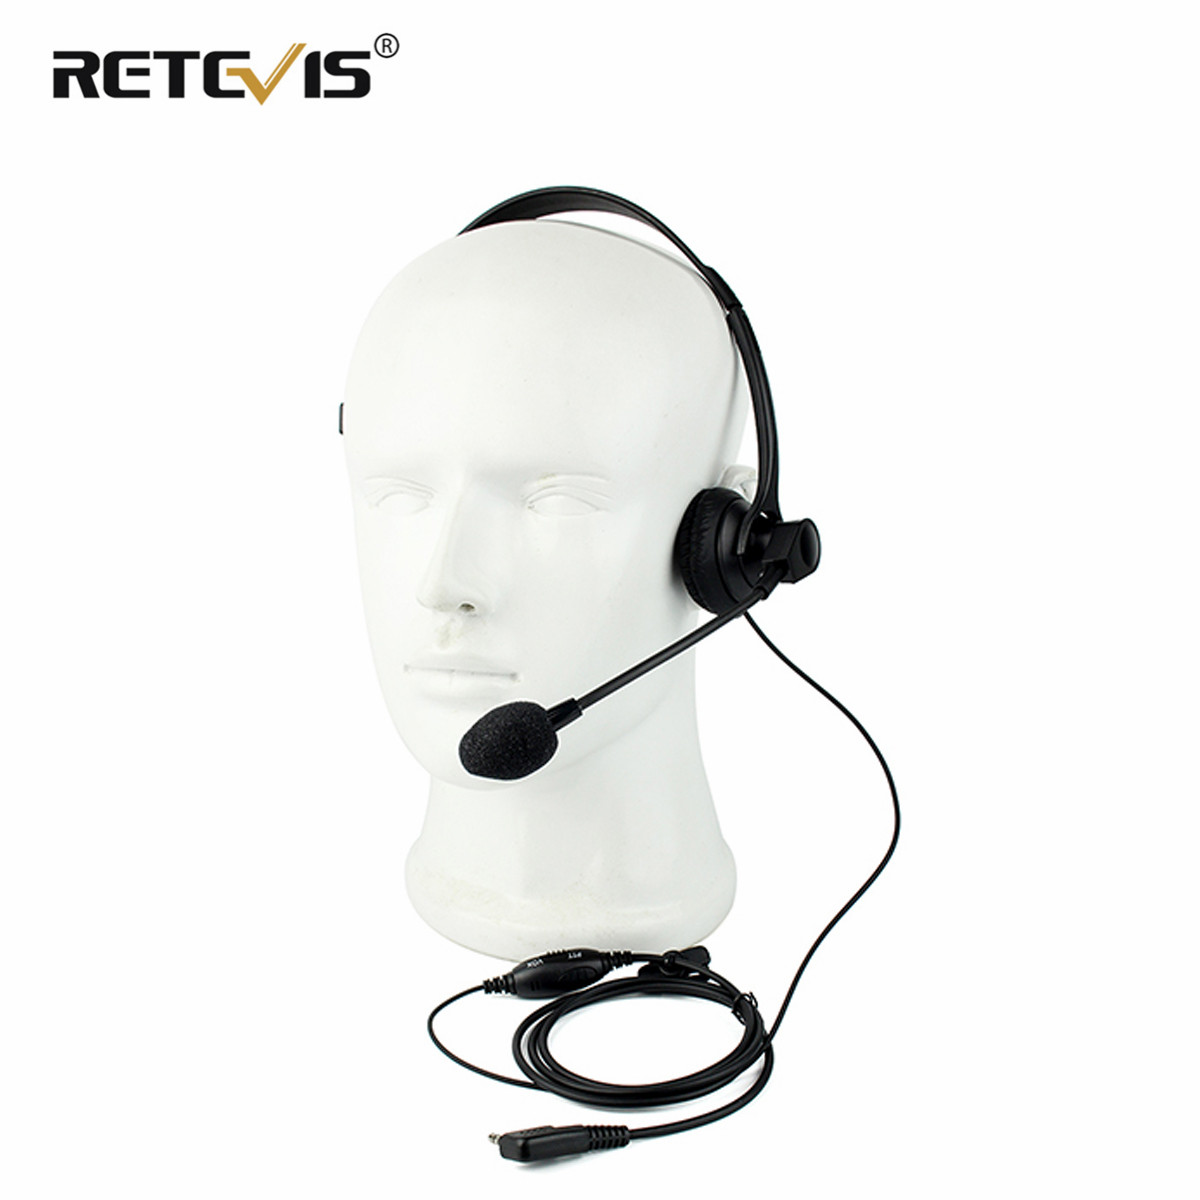 2 PIN VOX PTT Mic Headphone Walkie Talkie Headset For RETEVIS KENWOOD BAOFENG UV5R H555 For WOUXUN PUXING Radio C2202A